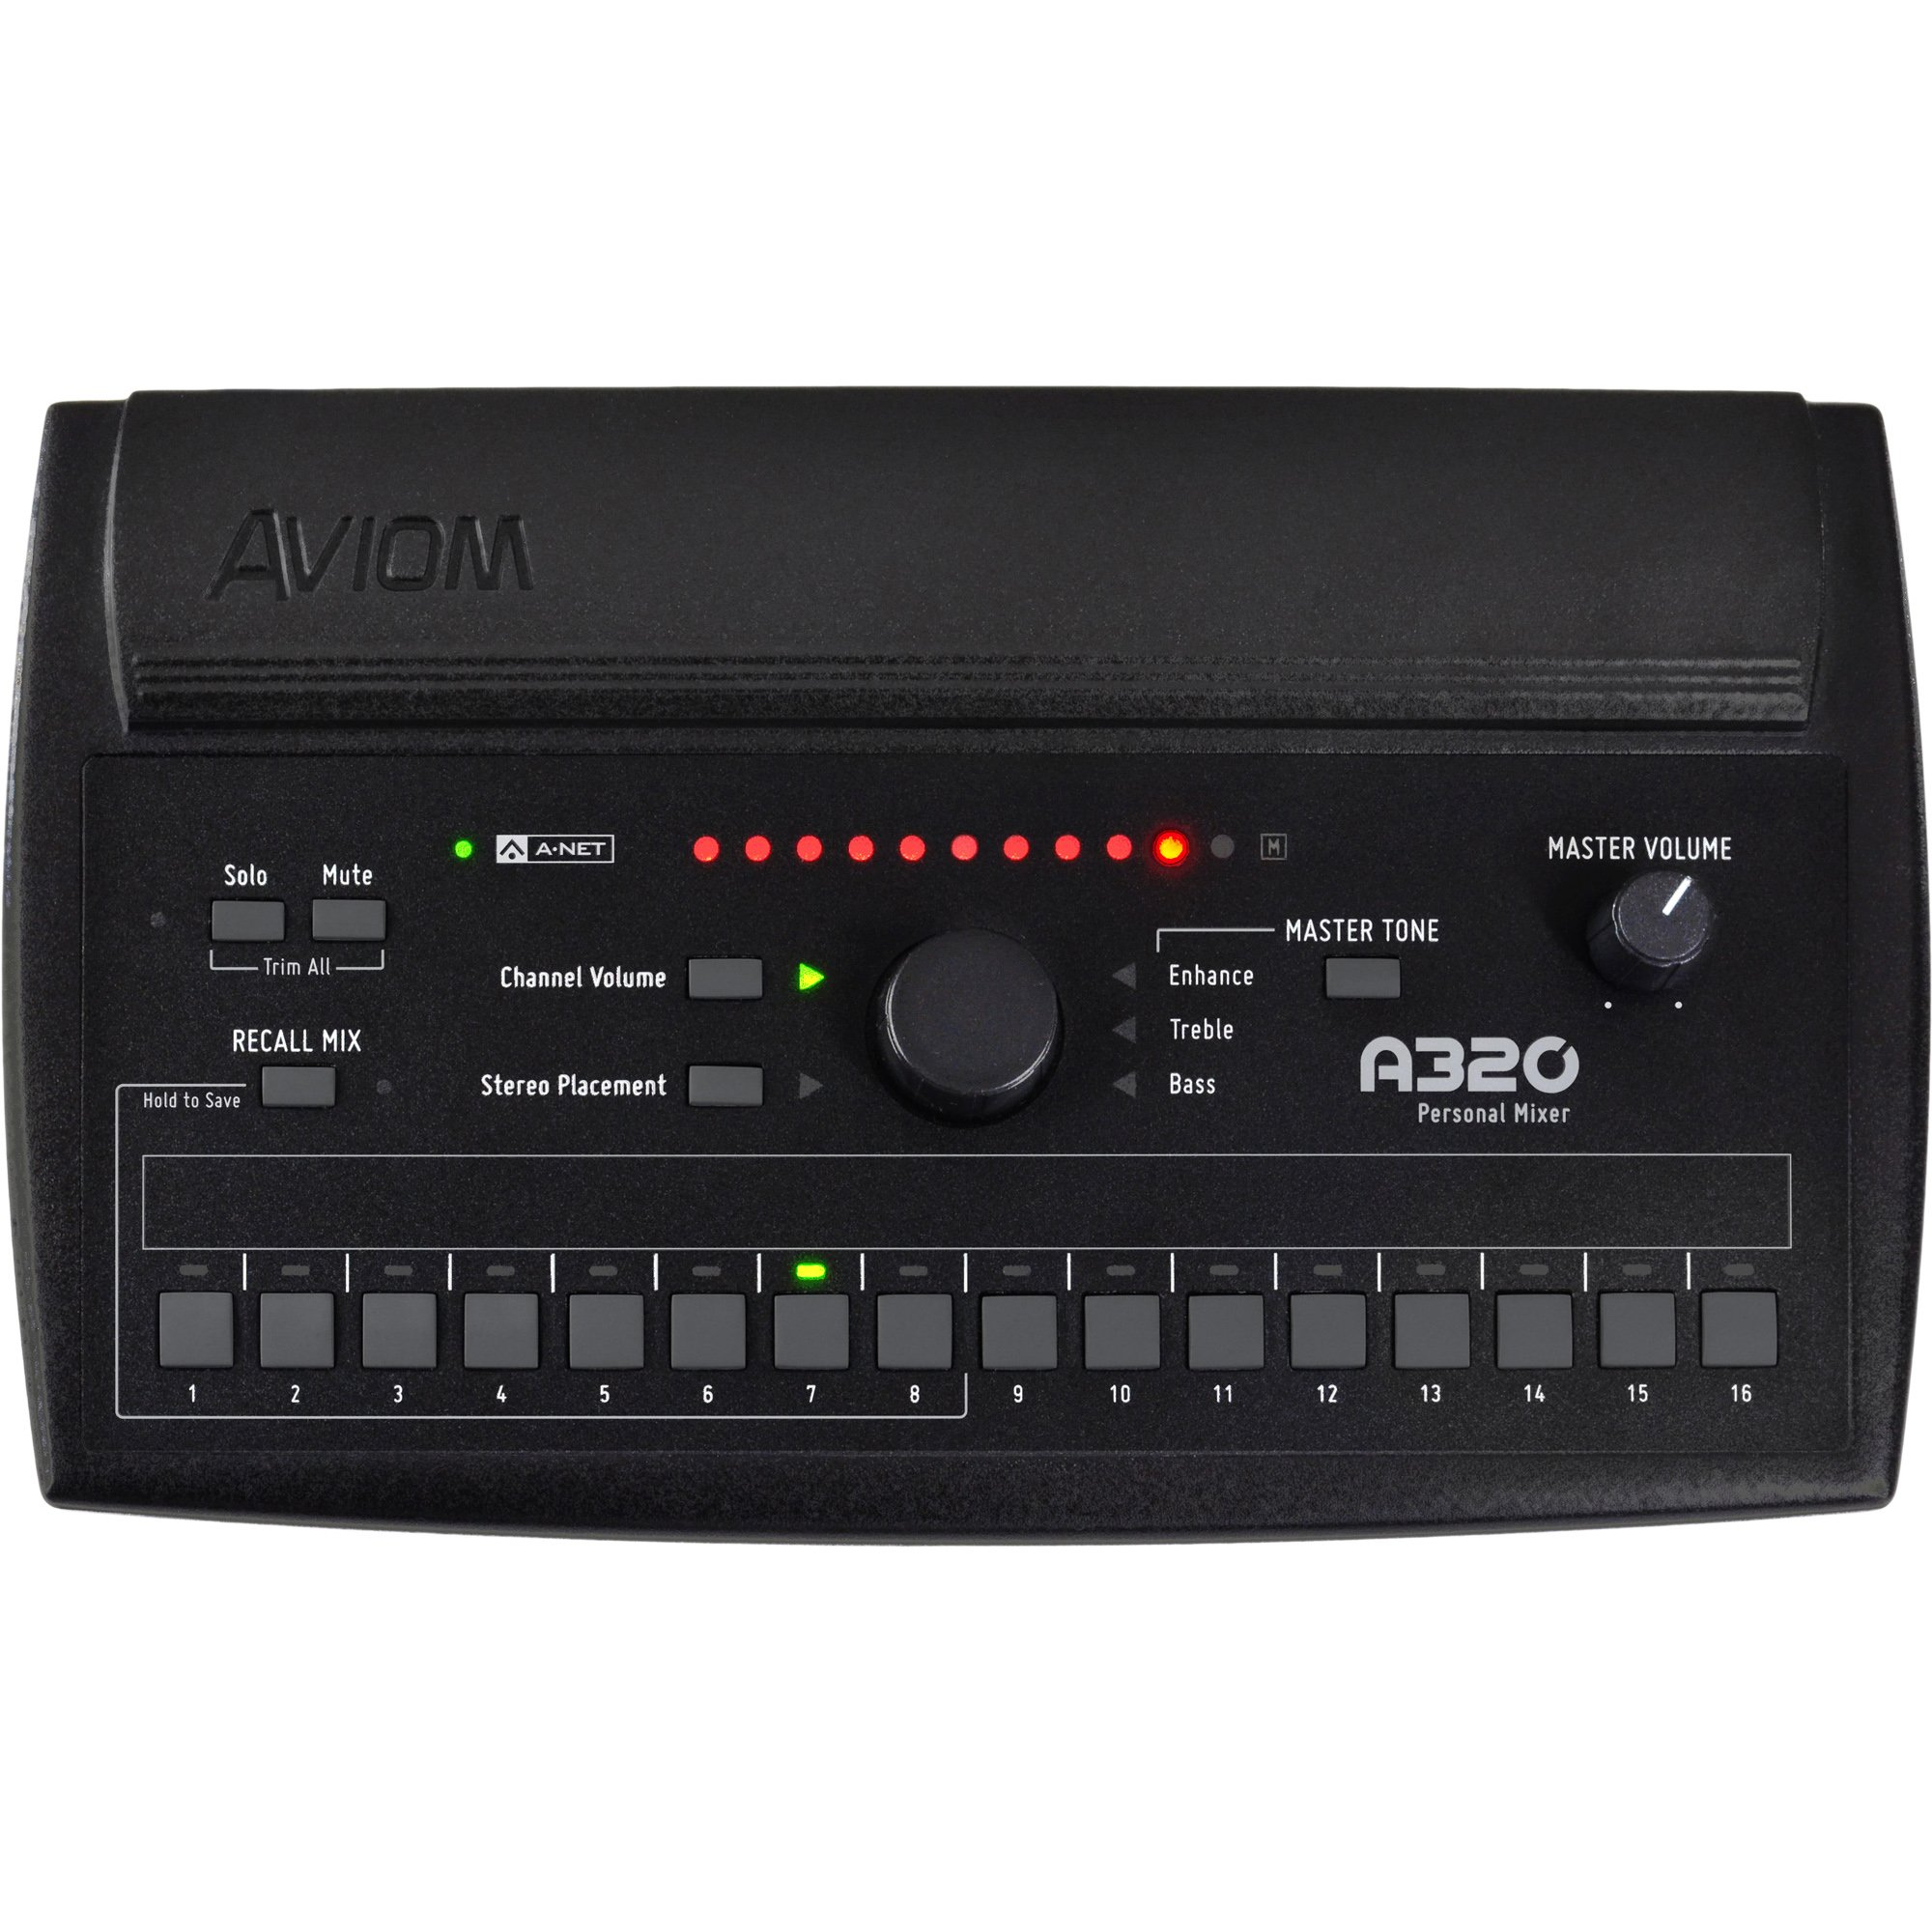 Aviom A320 Personal Mixer, Monitor 16 Mono or Stereo Sources, Eight Customizable Mix Presets, 3-Band Tone Control